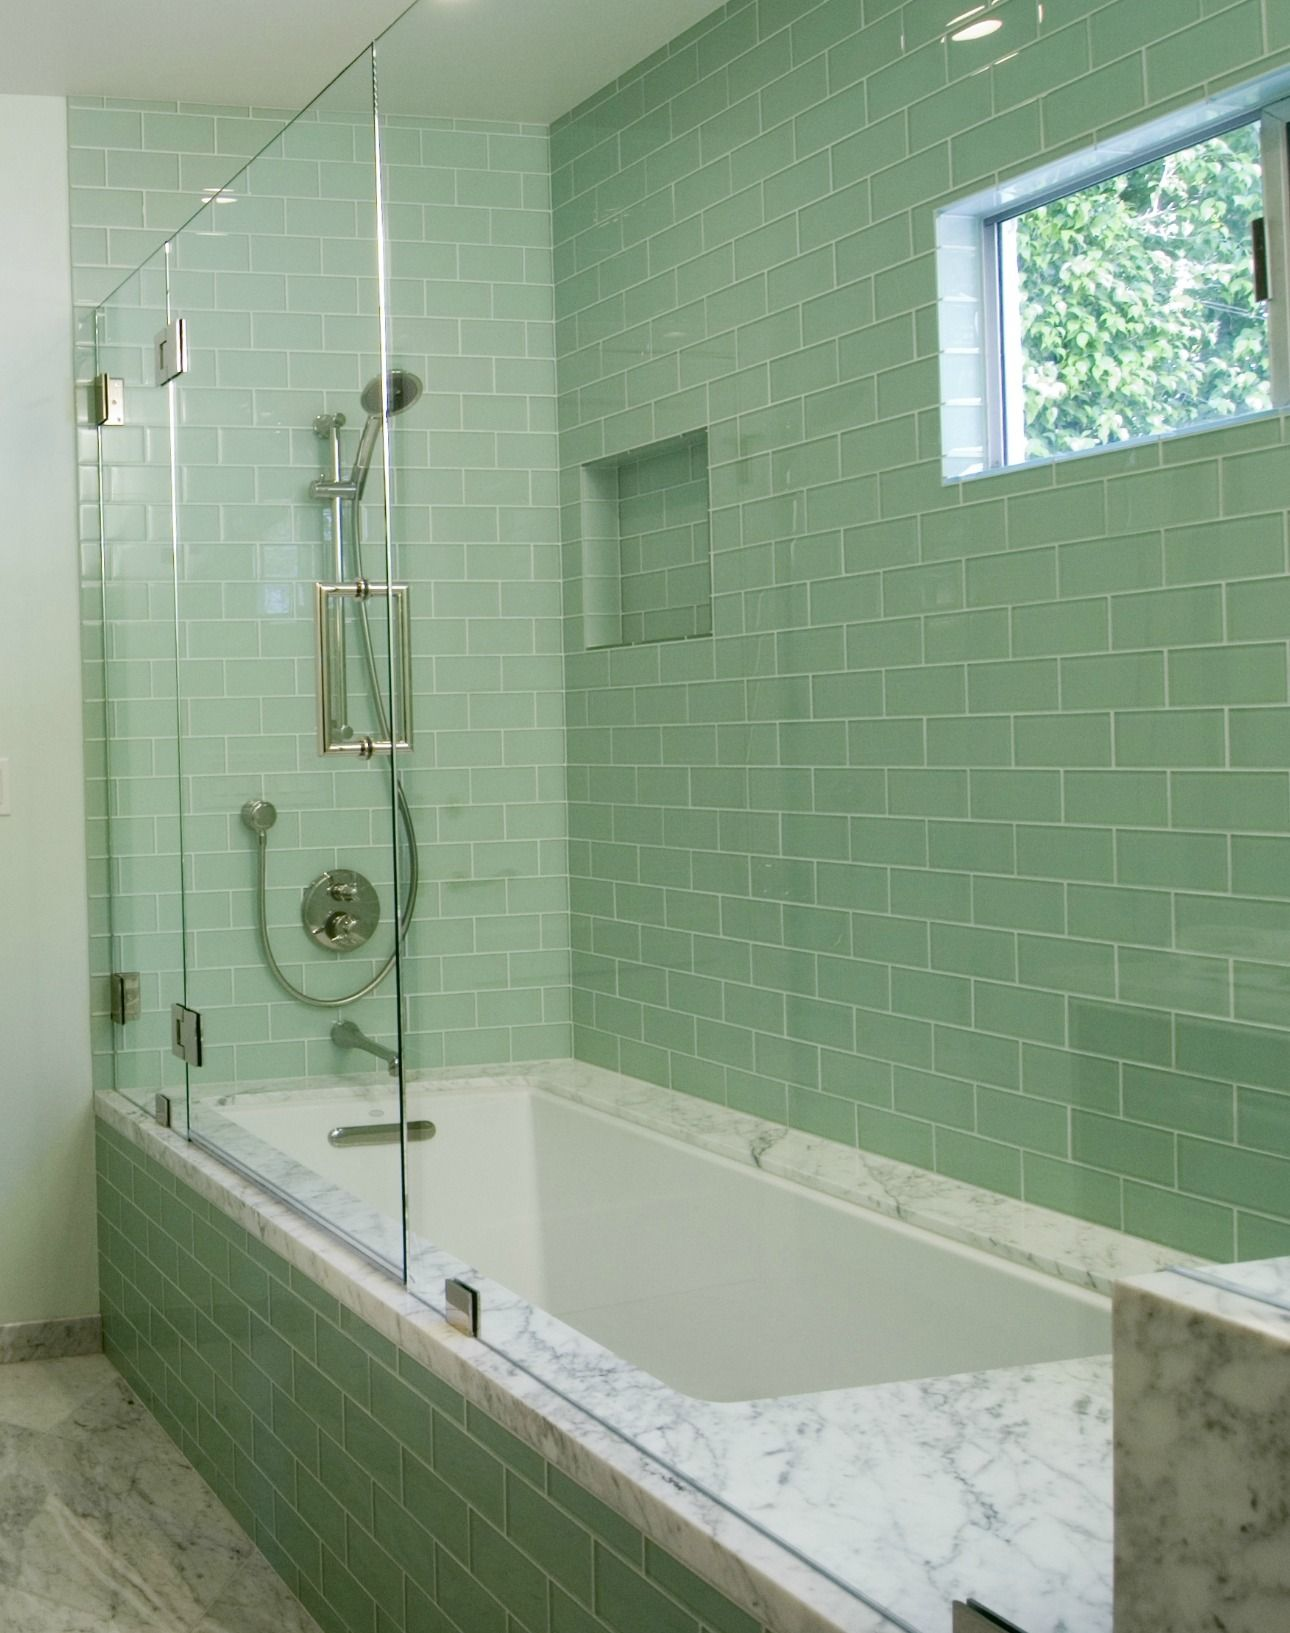 Attirant Terrific Glass Subway Tile For Your Bathroom And Kitchen Ideas: Appealing  Modern Green Glass Subway